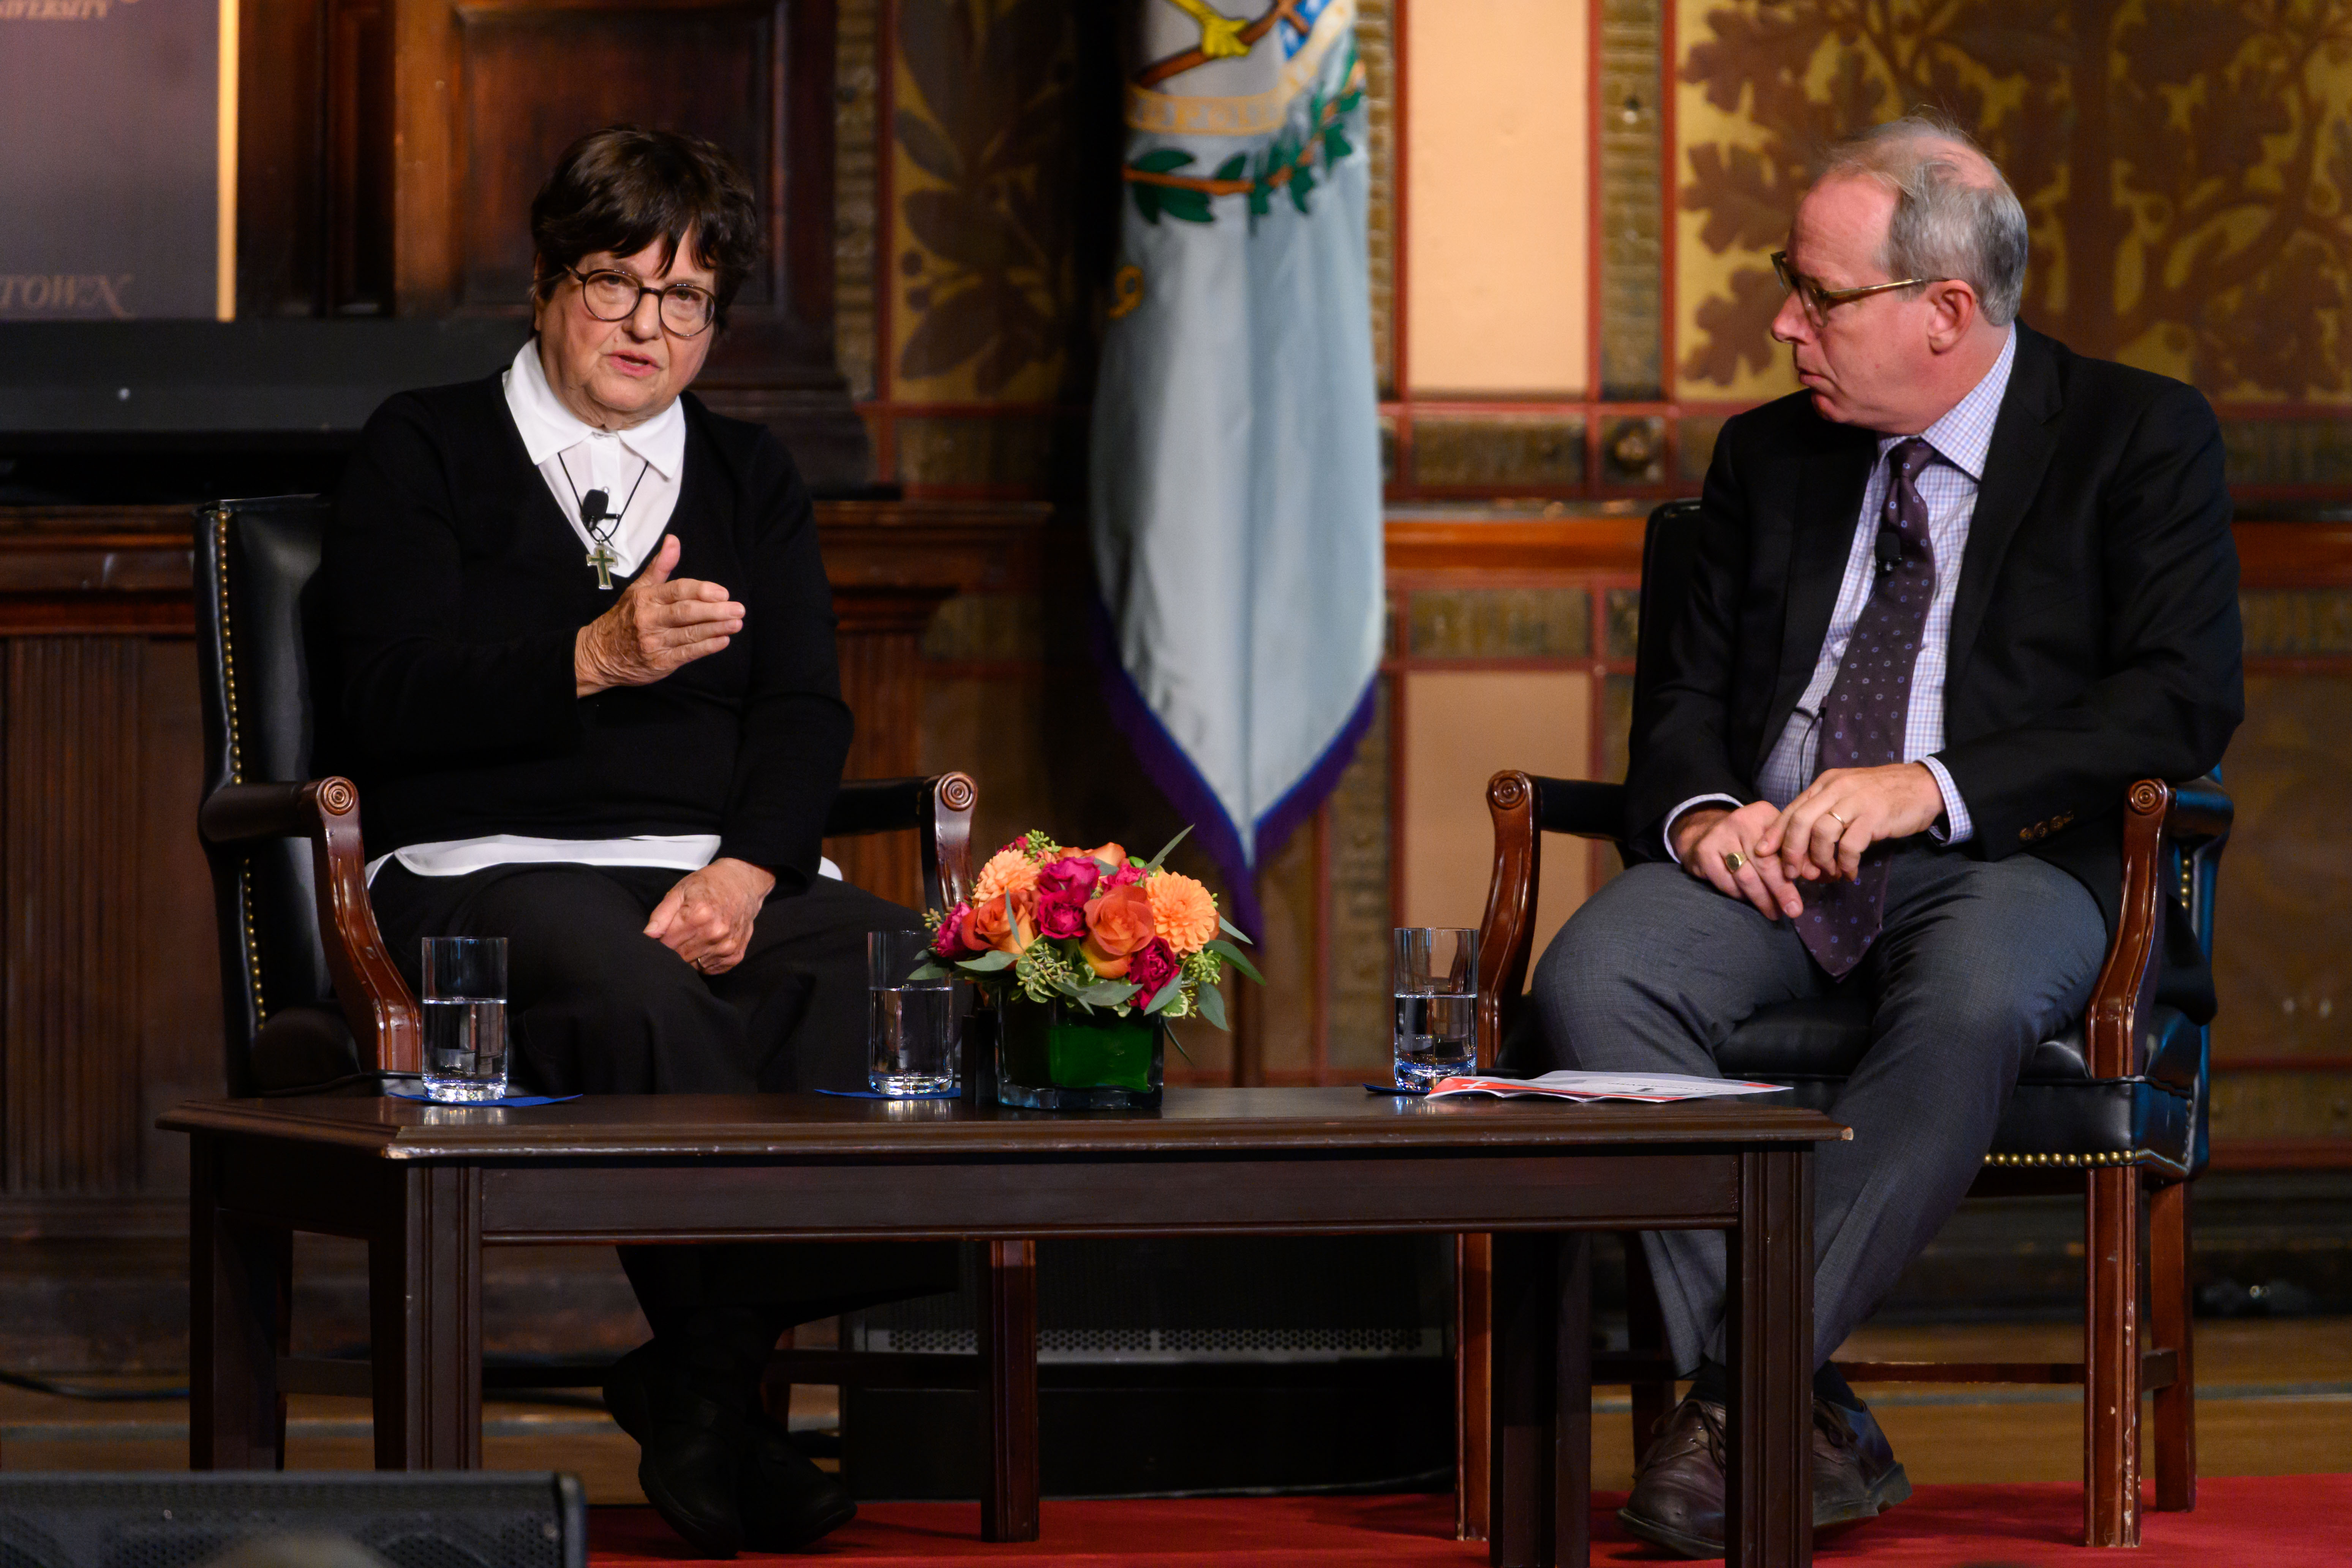 Sister Helen Prejean discusses her spiritual journey and advocacy against the death penalty.